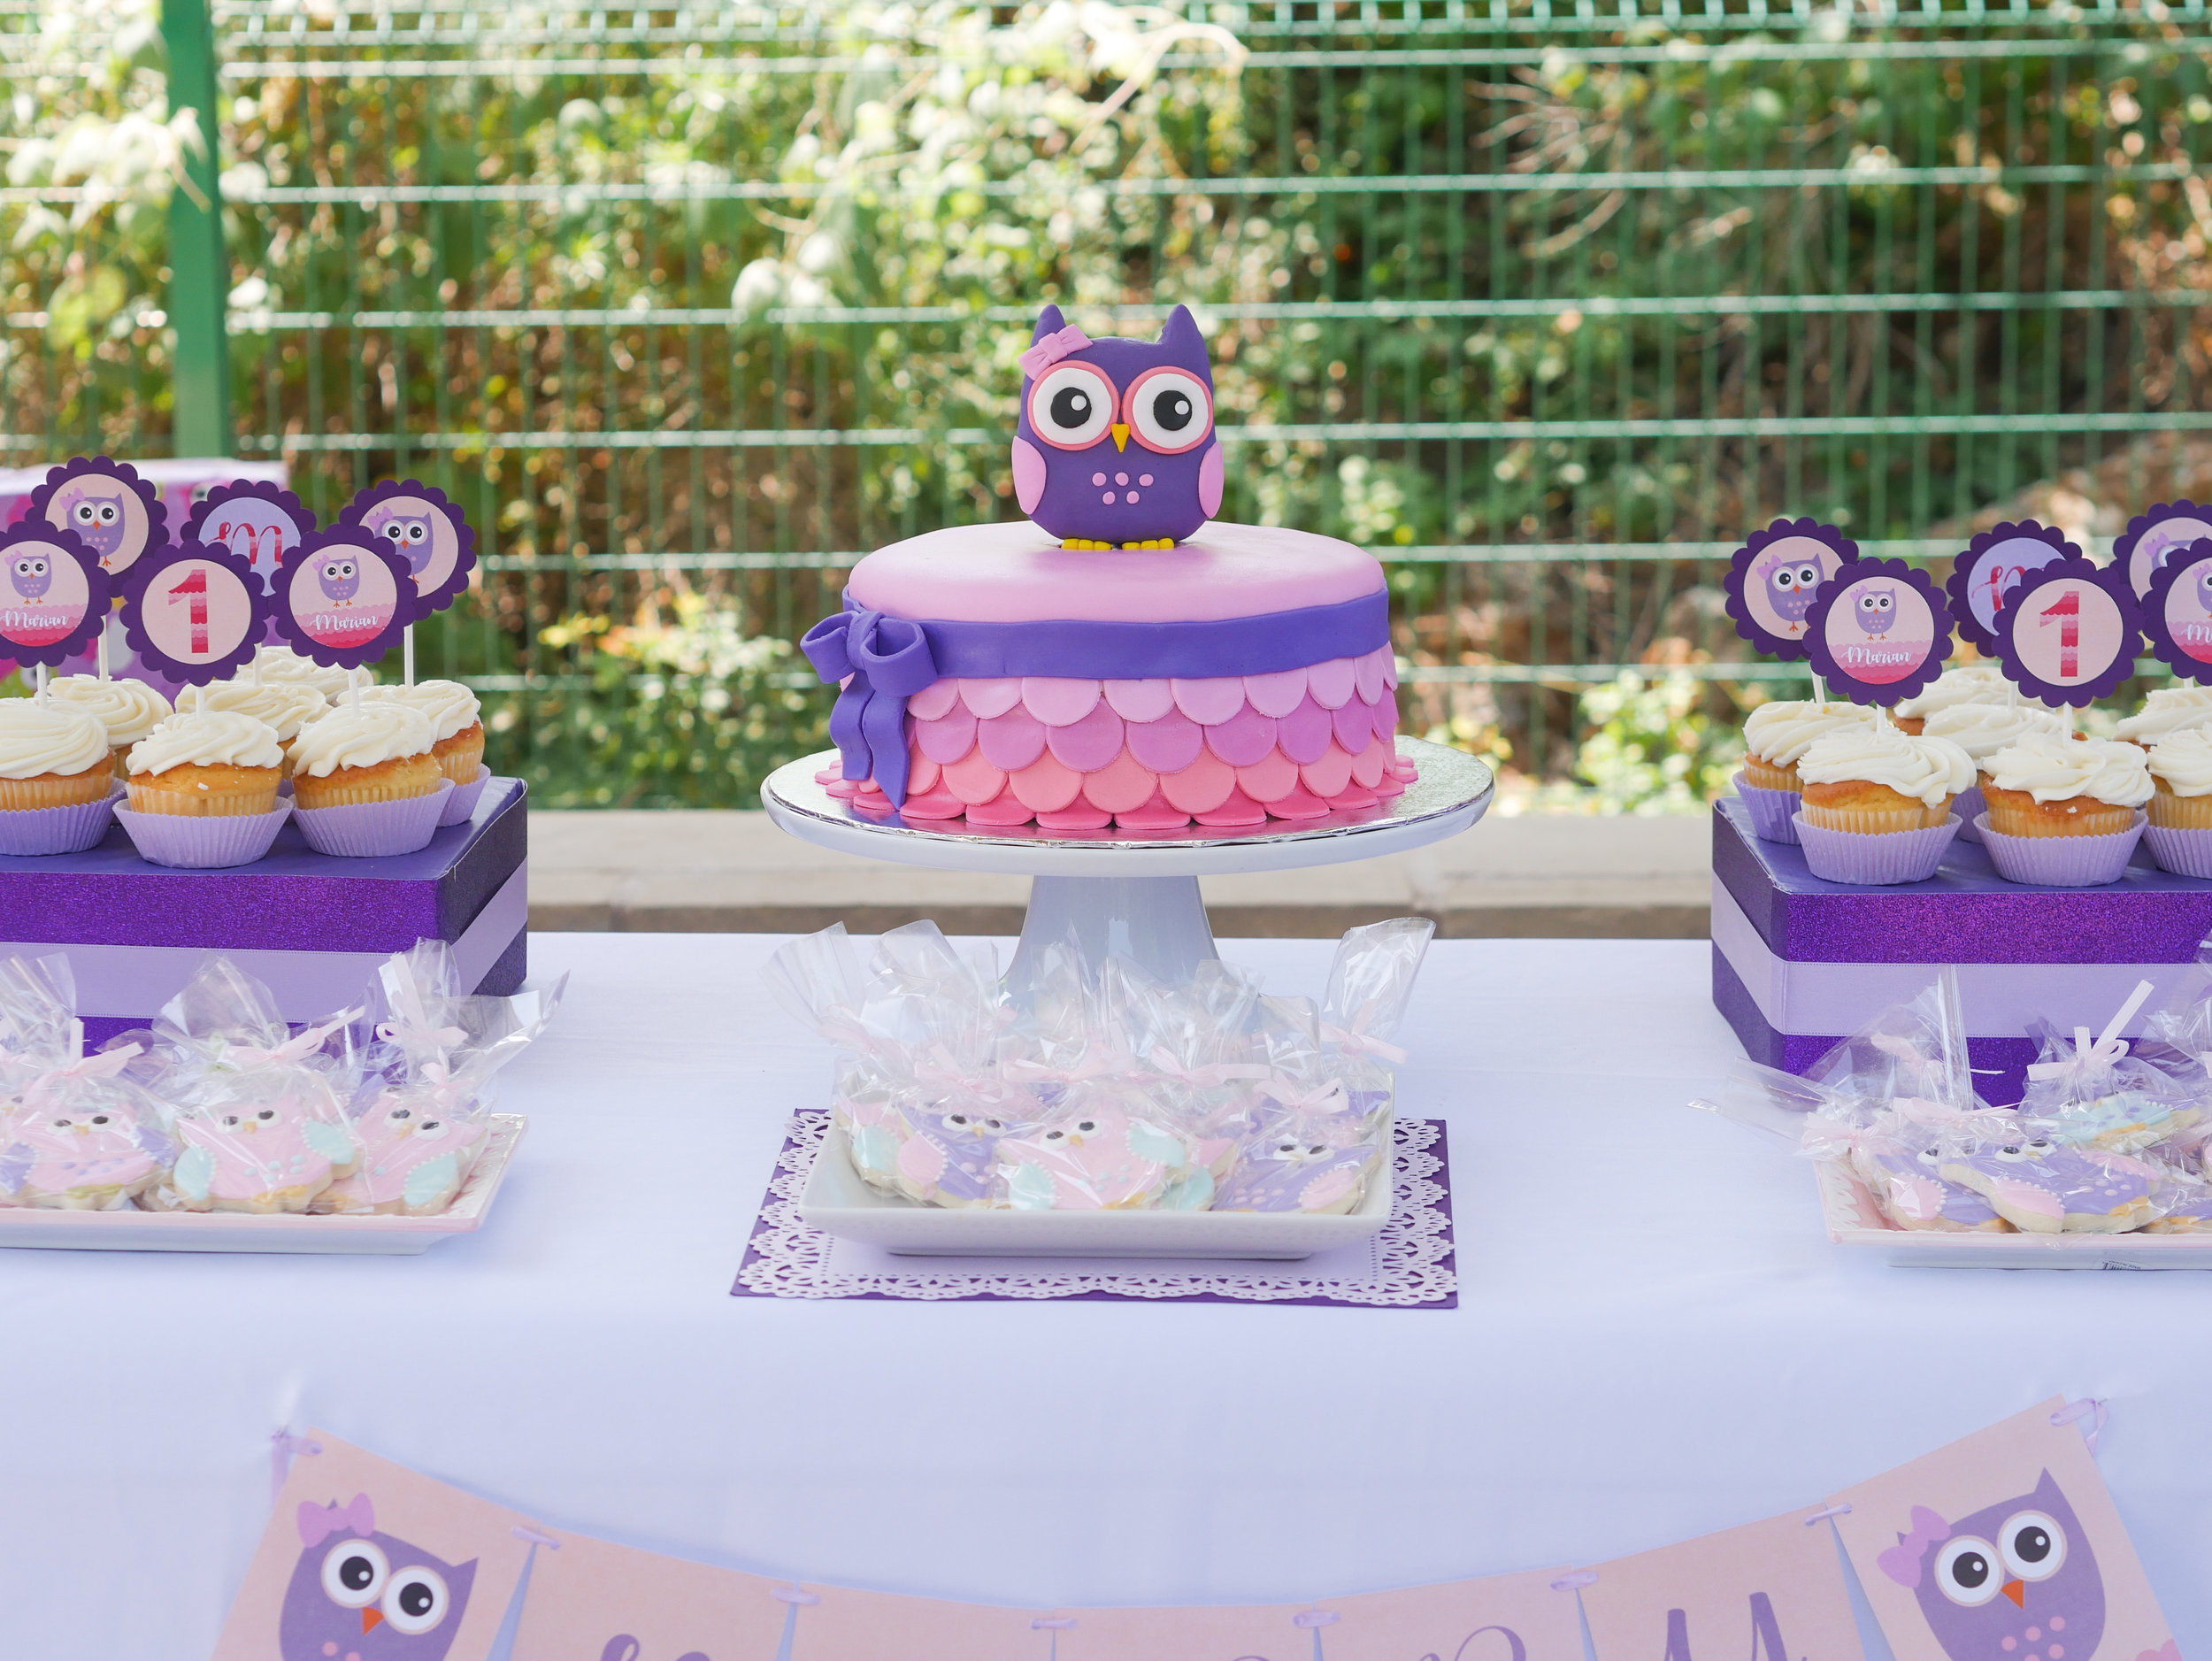 Come see this Ombre Pink and Purple Owl Themed first birthday party. This adorable owl birthday cake takes center stage on the dessert table and features scalloped frosting to resemble feathers. Click to see the entire party styled by party stylist Mint Event Design. #birthdayparty #partyideas #partyinspiration #owl #birthdaycake #desserttable